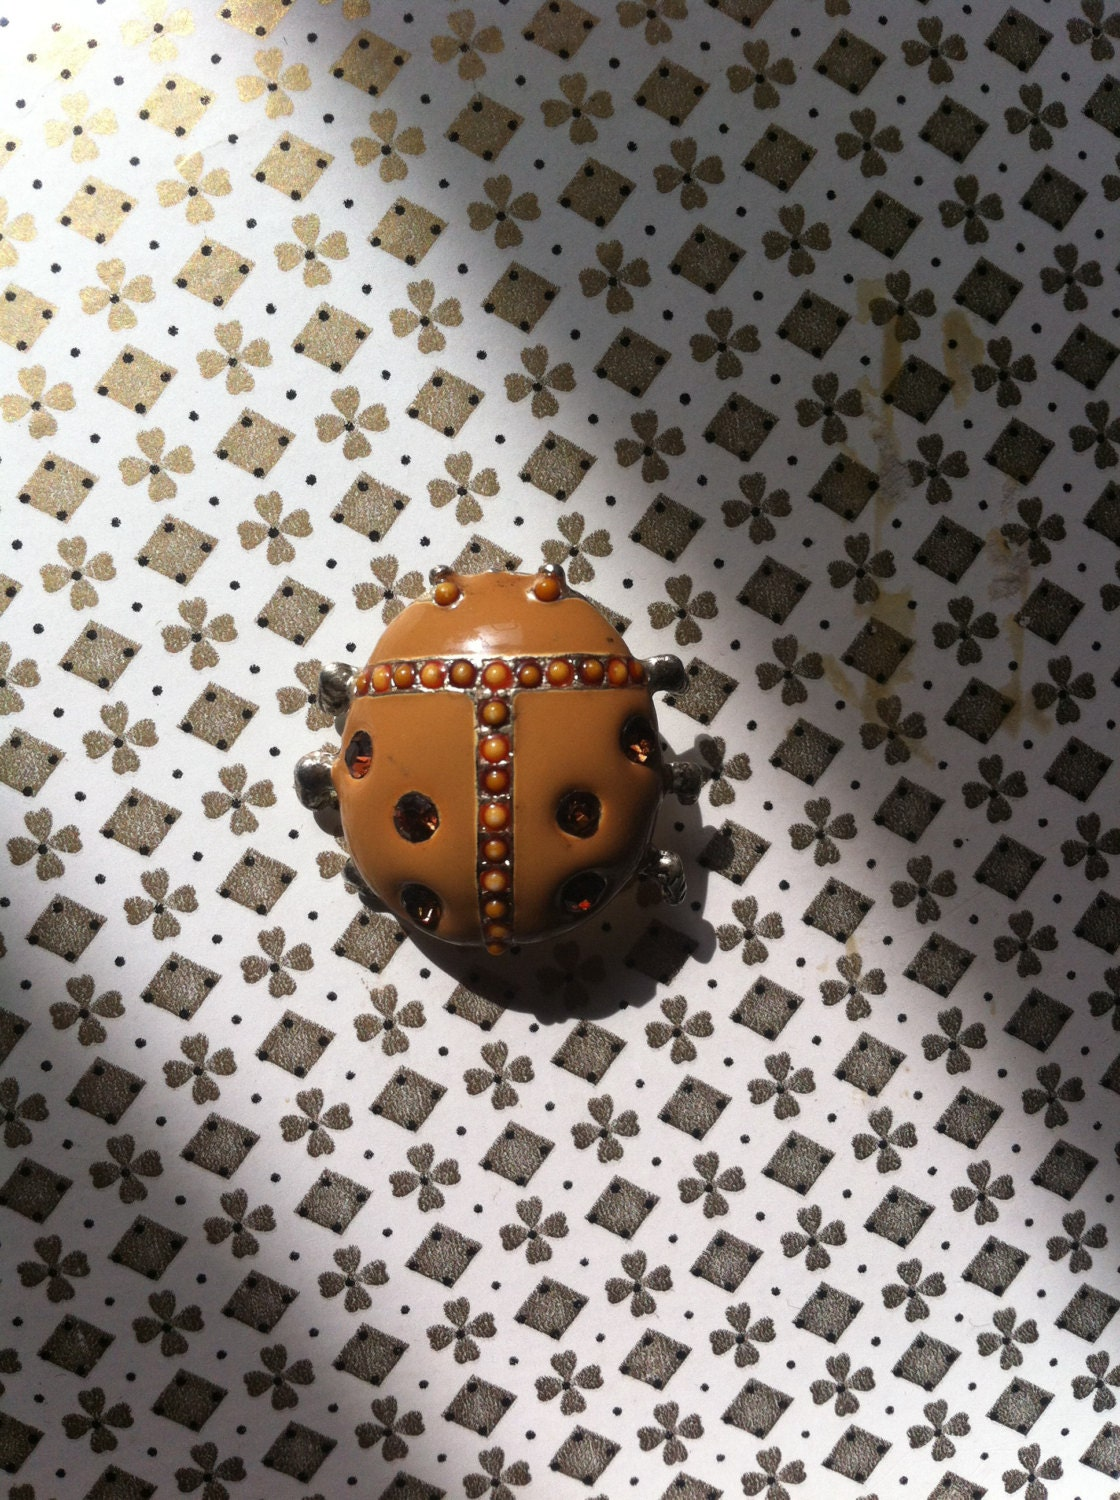 Vintage enamel cloisonne ladybird lady bug brooch pin antique vintage retro jewellery jewelry free postage